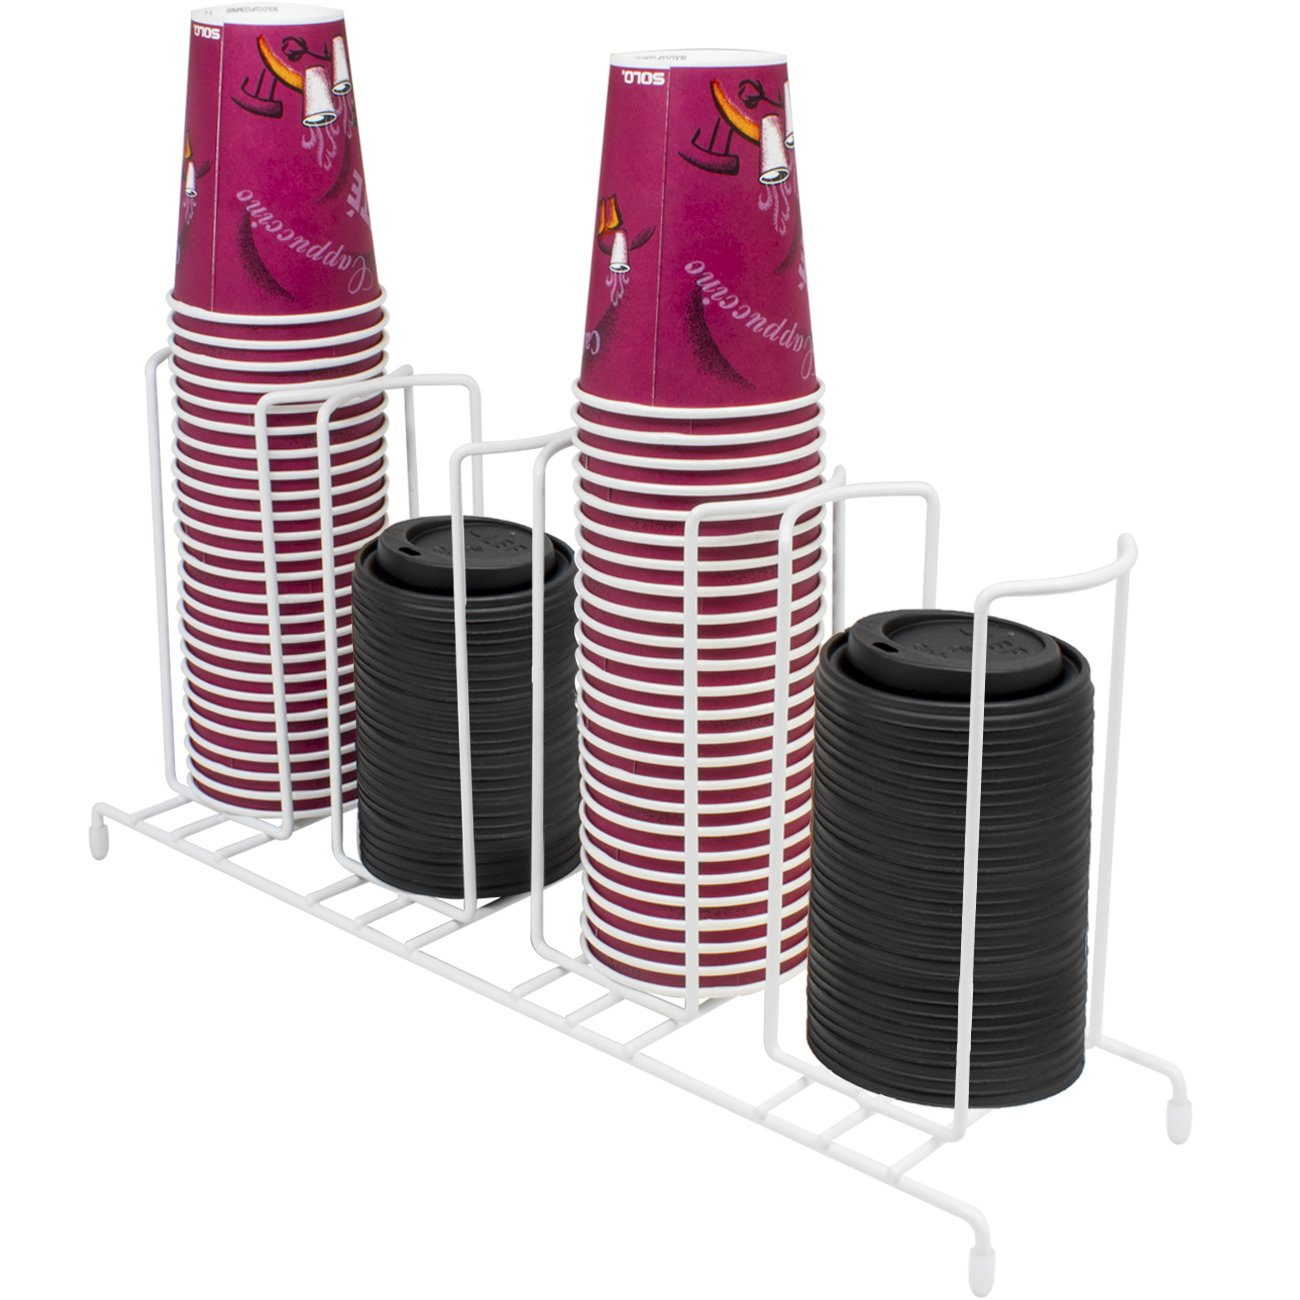 Sorbus Cup and Lid Organizer, Great for Office, Convenience Store, Coffee Shop, Buffet, and More, 4 Section Rack, Holds 5, 6 and 10 oz. Cups and Lids (Black) CUP-HLDR4-BLK